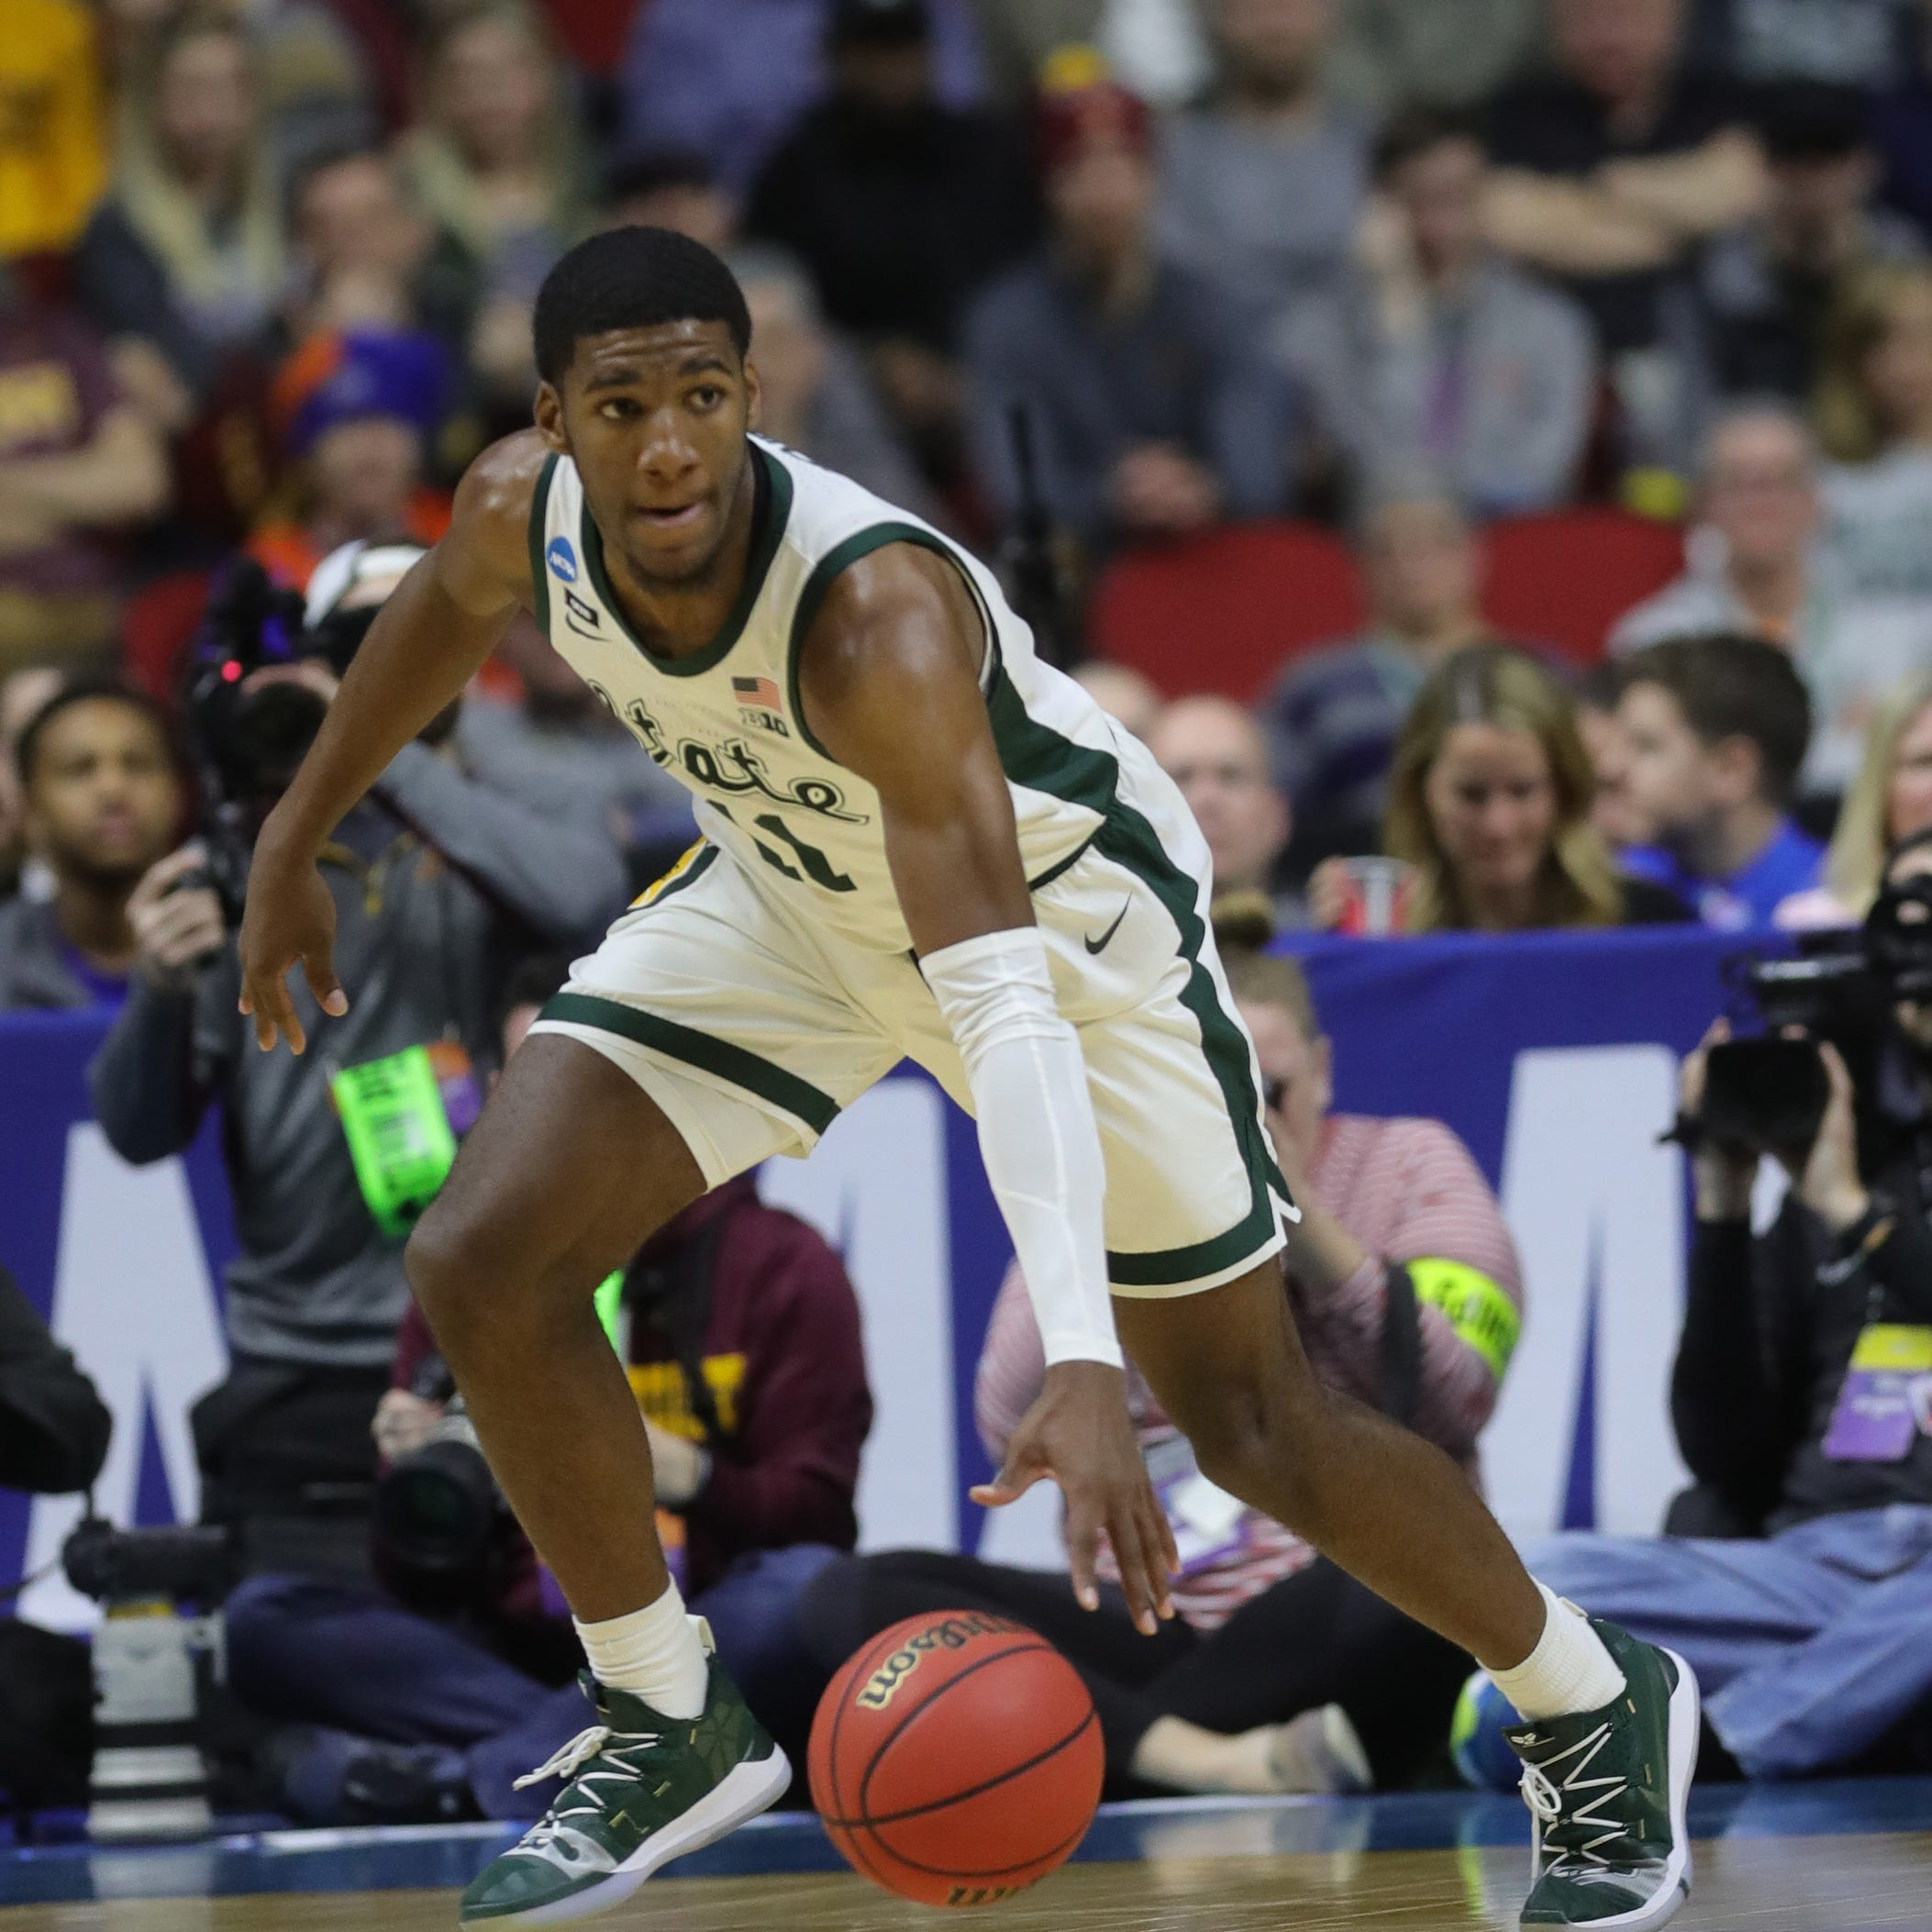 Aaron Henry's game pops, creates new headlines in Michigan State's win over Minnesota